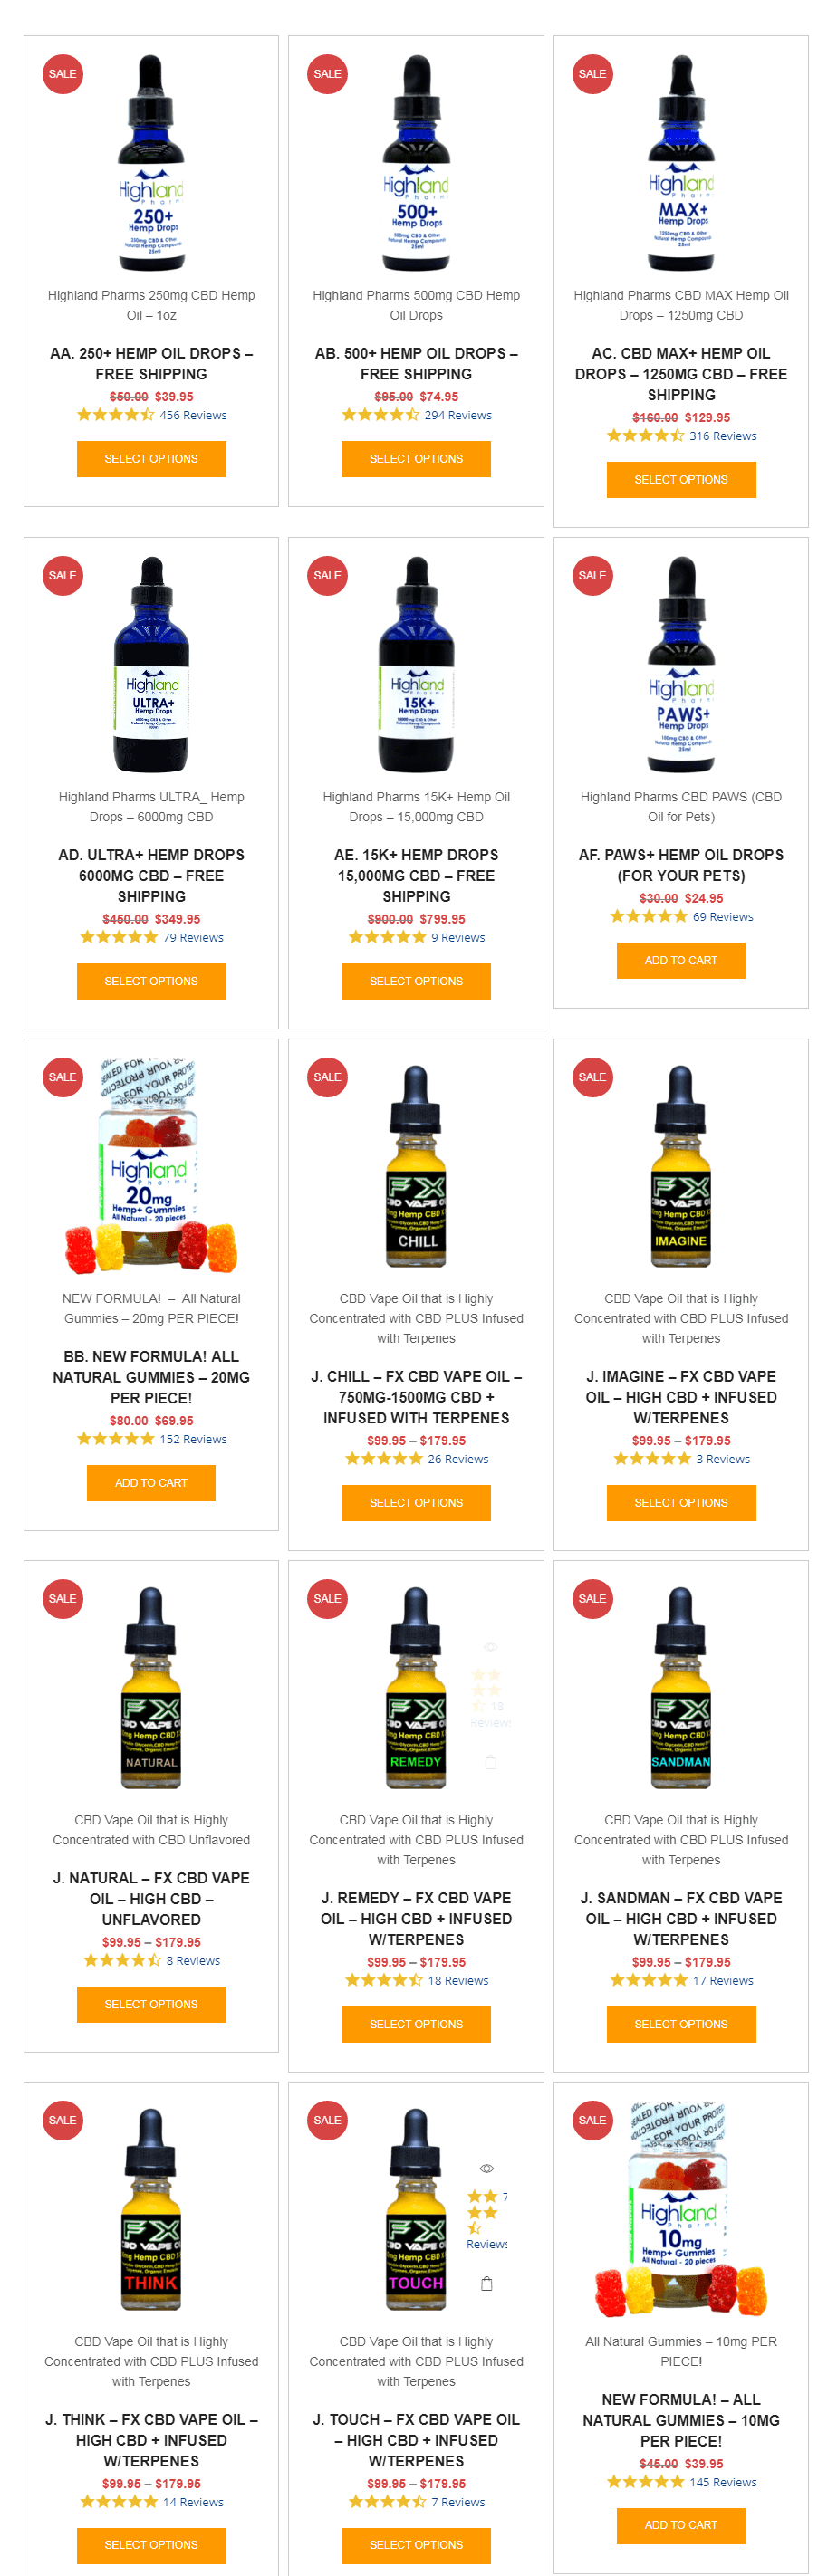 Highland Pharms Coupon Codes-CBD Hemp Oil